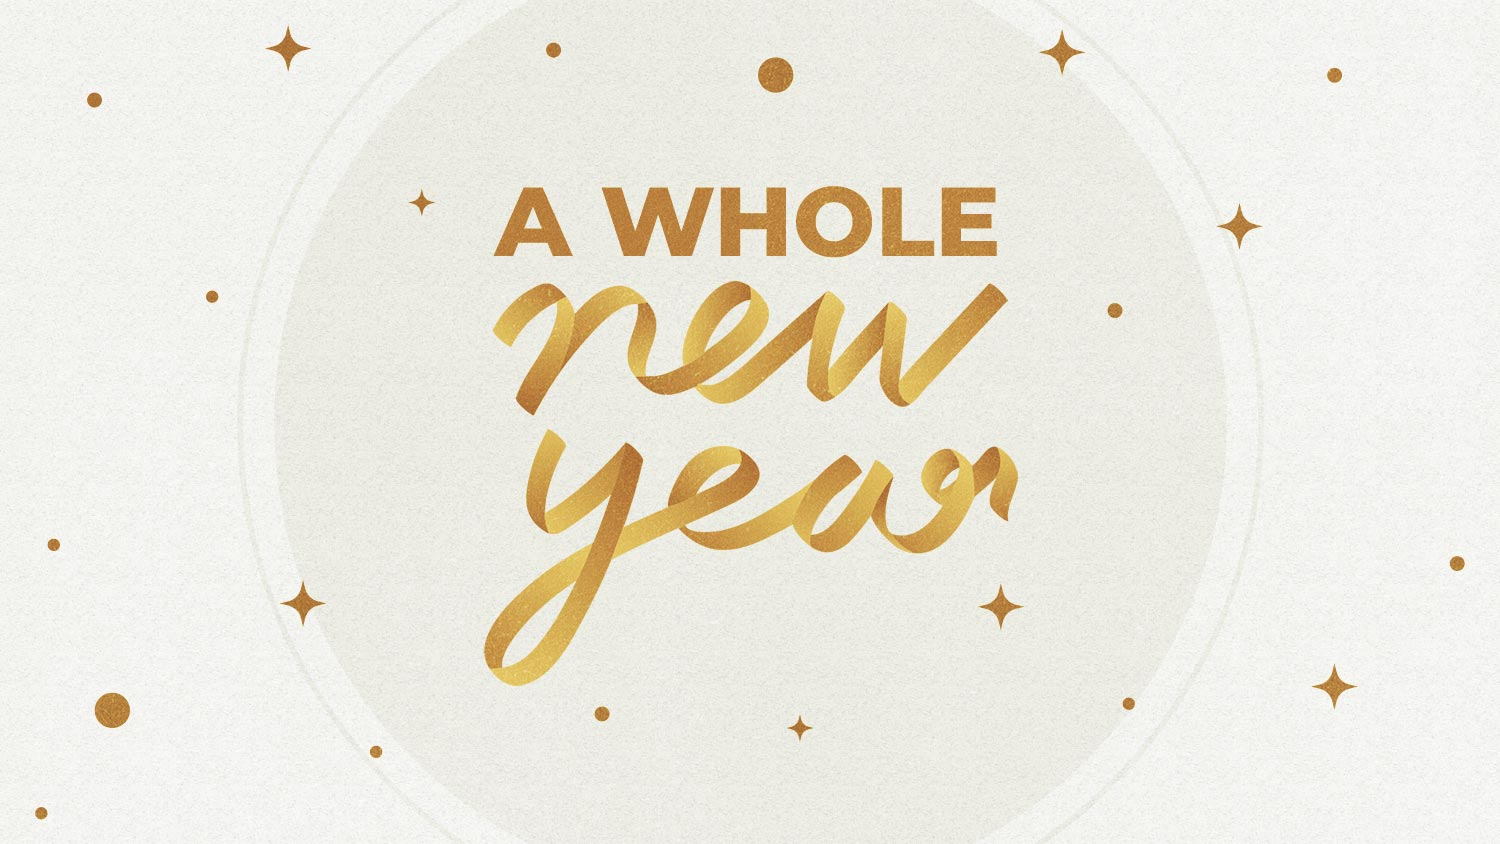 A Whole New Year Image